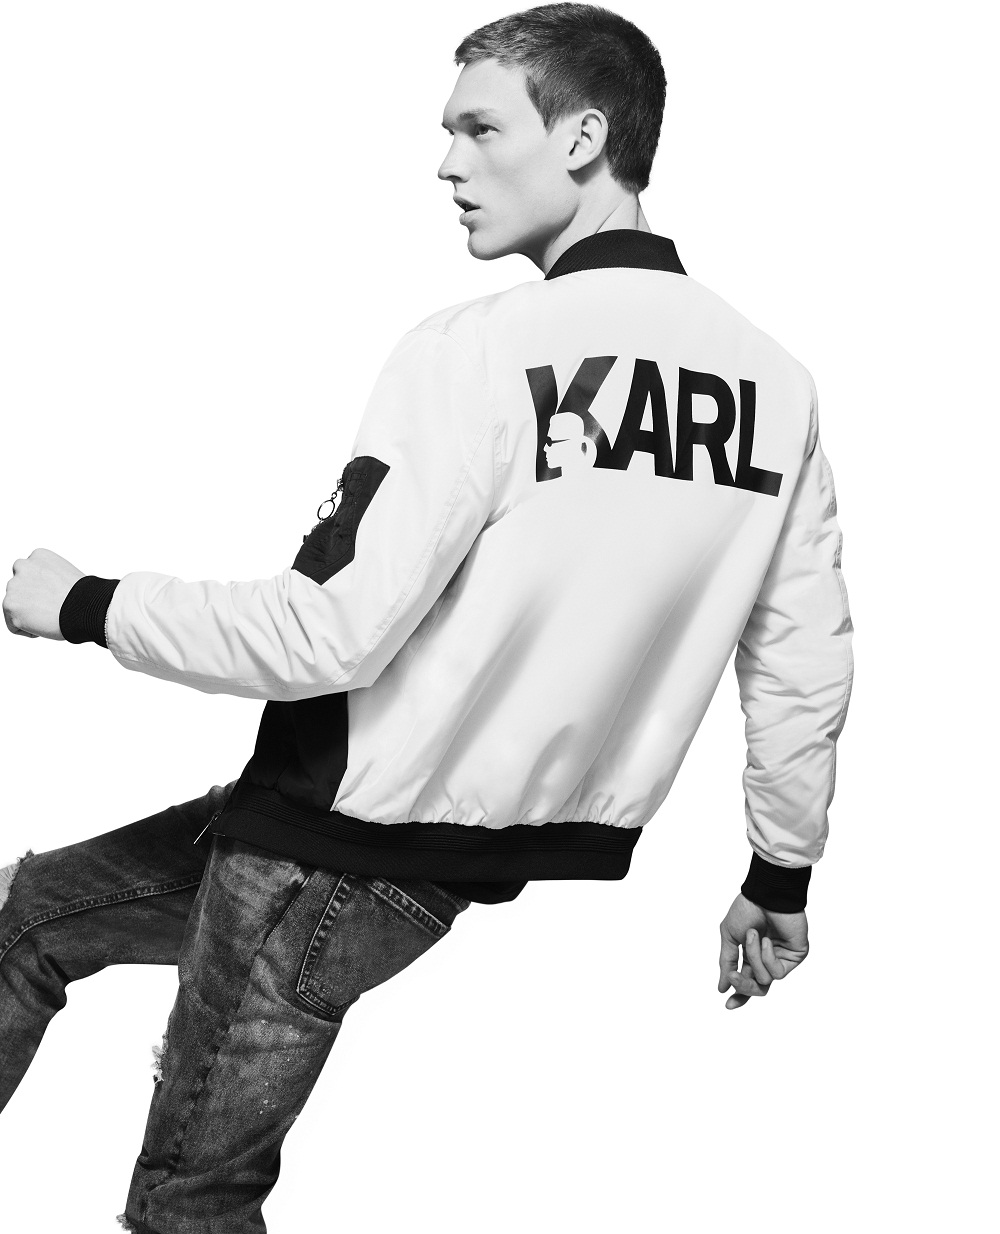 Karl Lagerfeld for Falabella - Hombre (8)